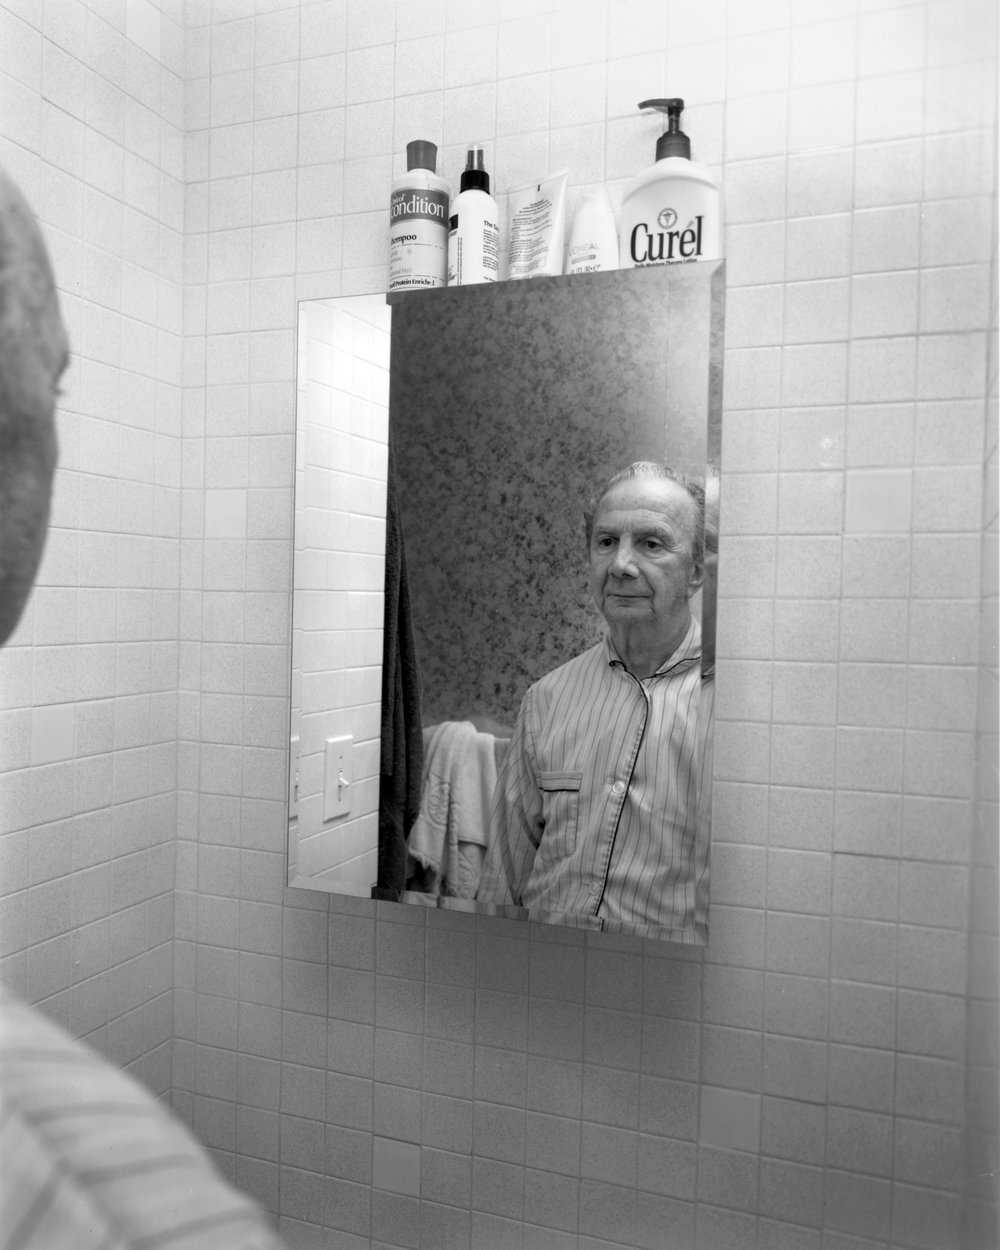 Stephen DiRado,  Gene, November 2, 2003, Marlborough, MA  from the series  With Dad , 2003, gelatin silver print, Sinon Collection Fund, Clementi Family Fund, Robert and Elaine Smith Photography Fund, 2015.19